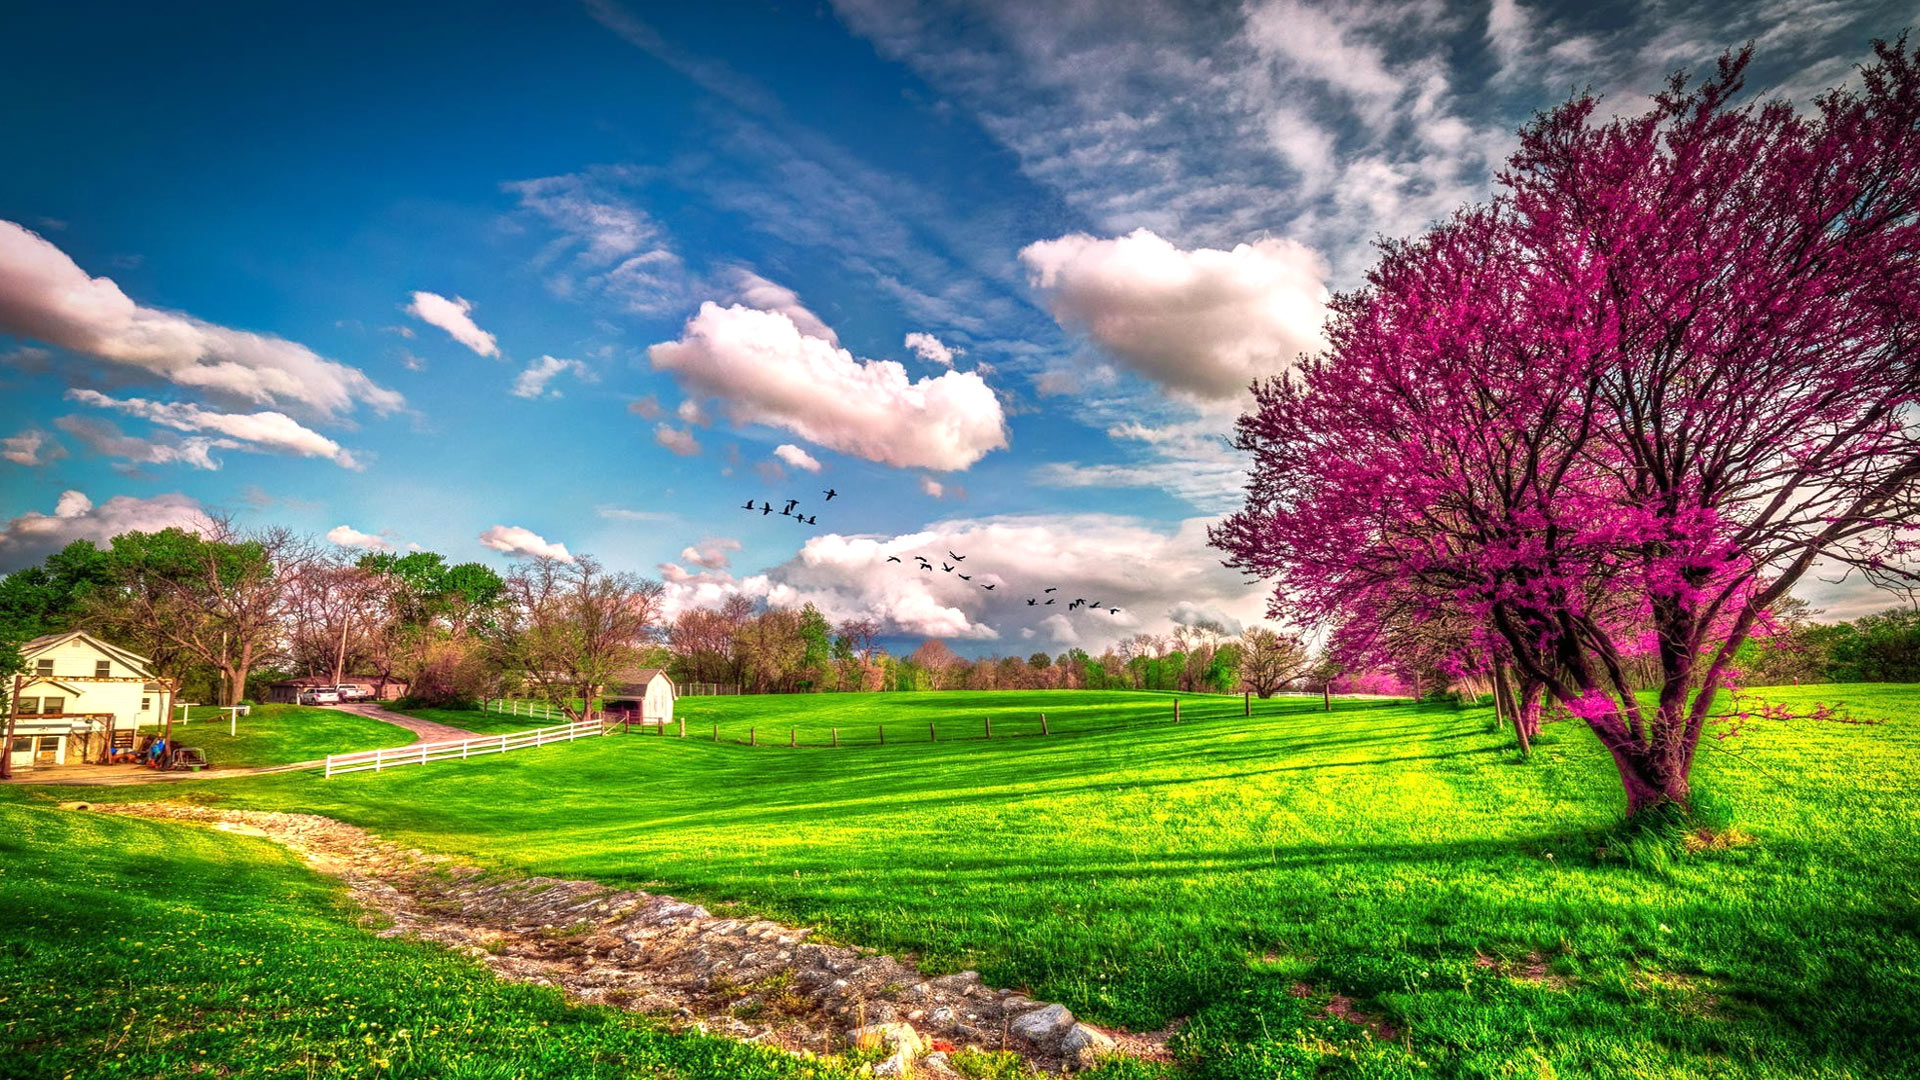 Spring Wallpapers Widescreen BCNJ6US   4USkY 1920x1080